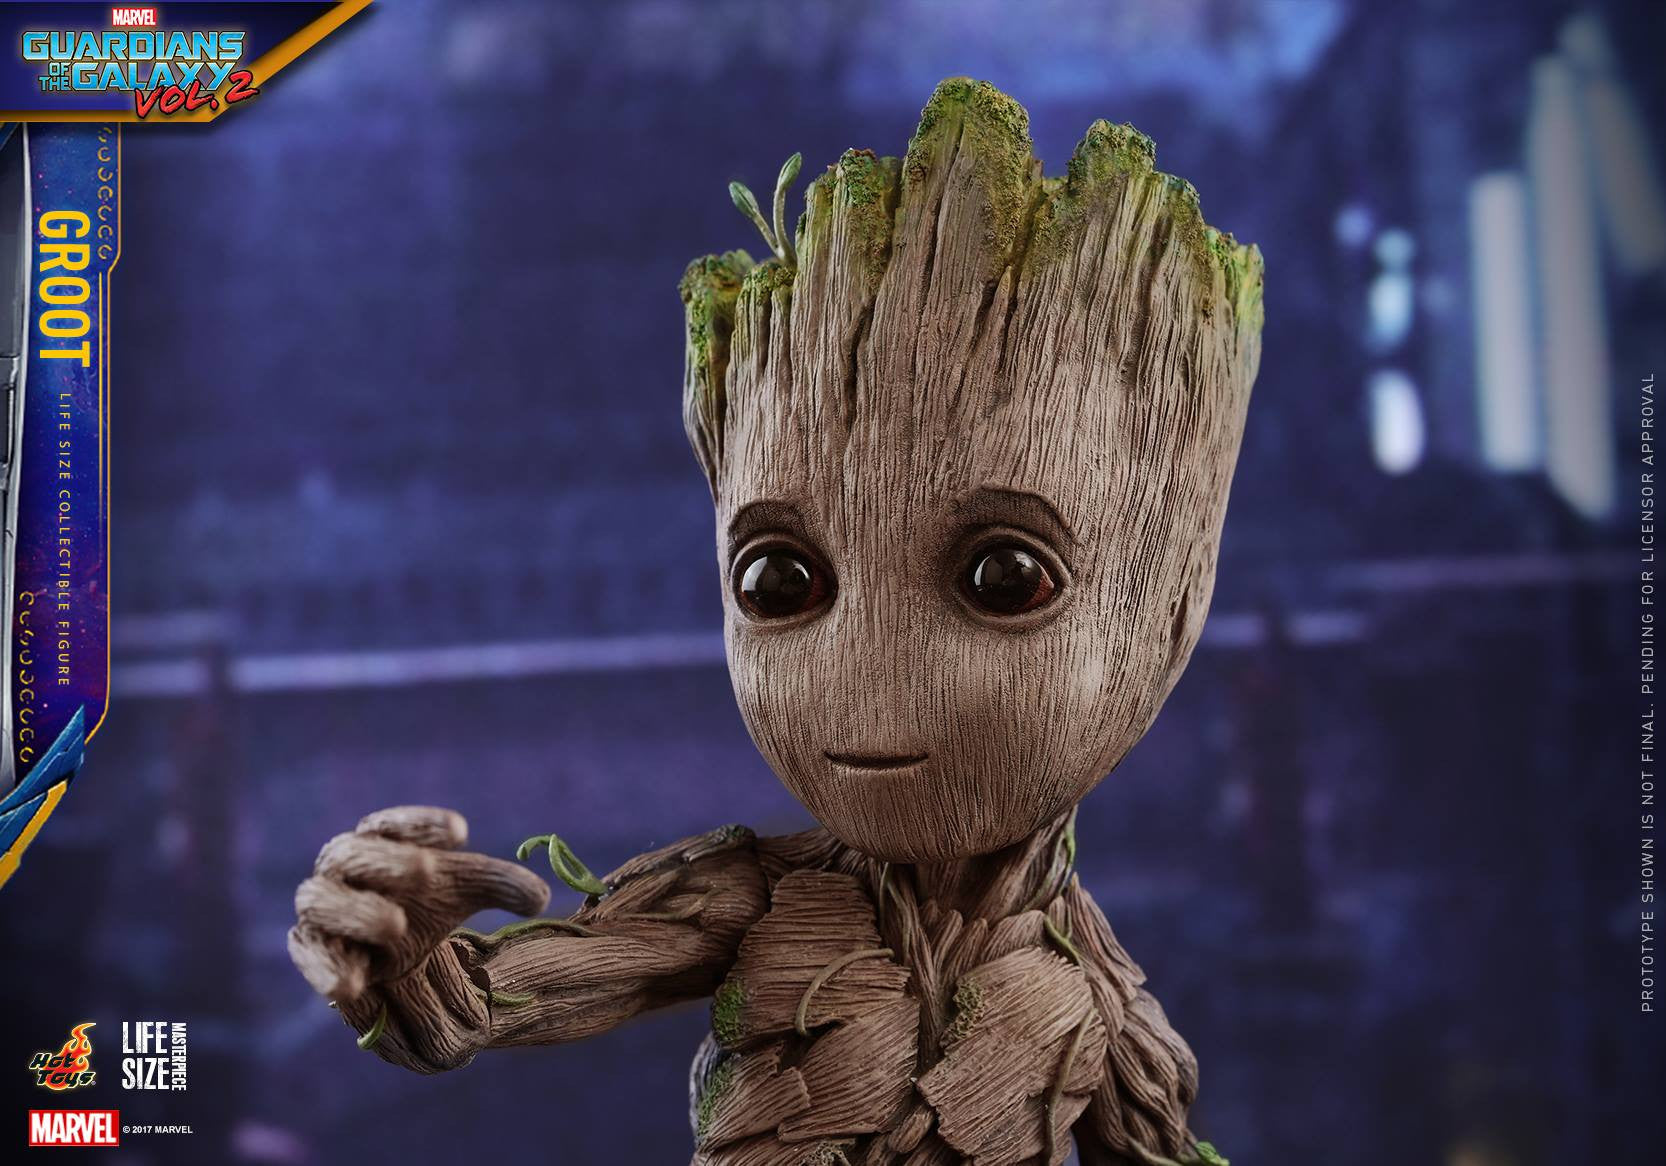 Hot Toys - LMS004 - Guardians of the Galaxy Vol. 2 - Baby Groot (Life-Size)